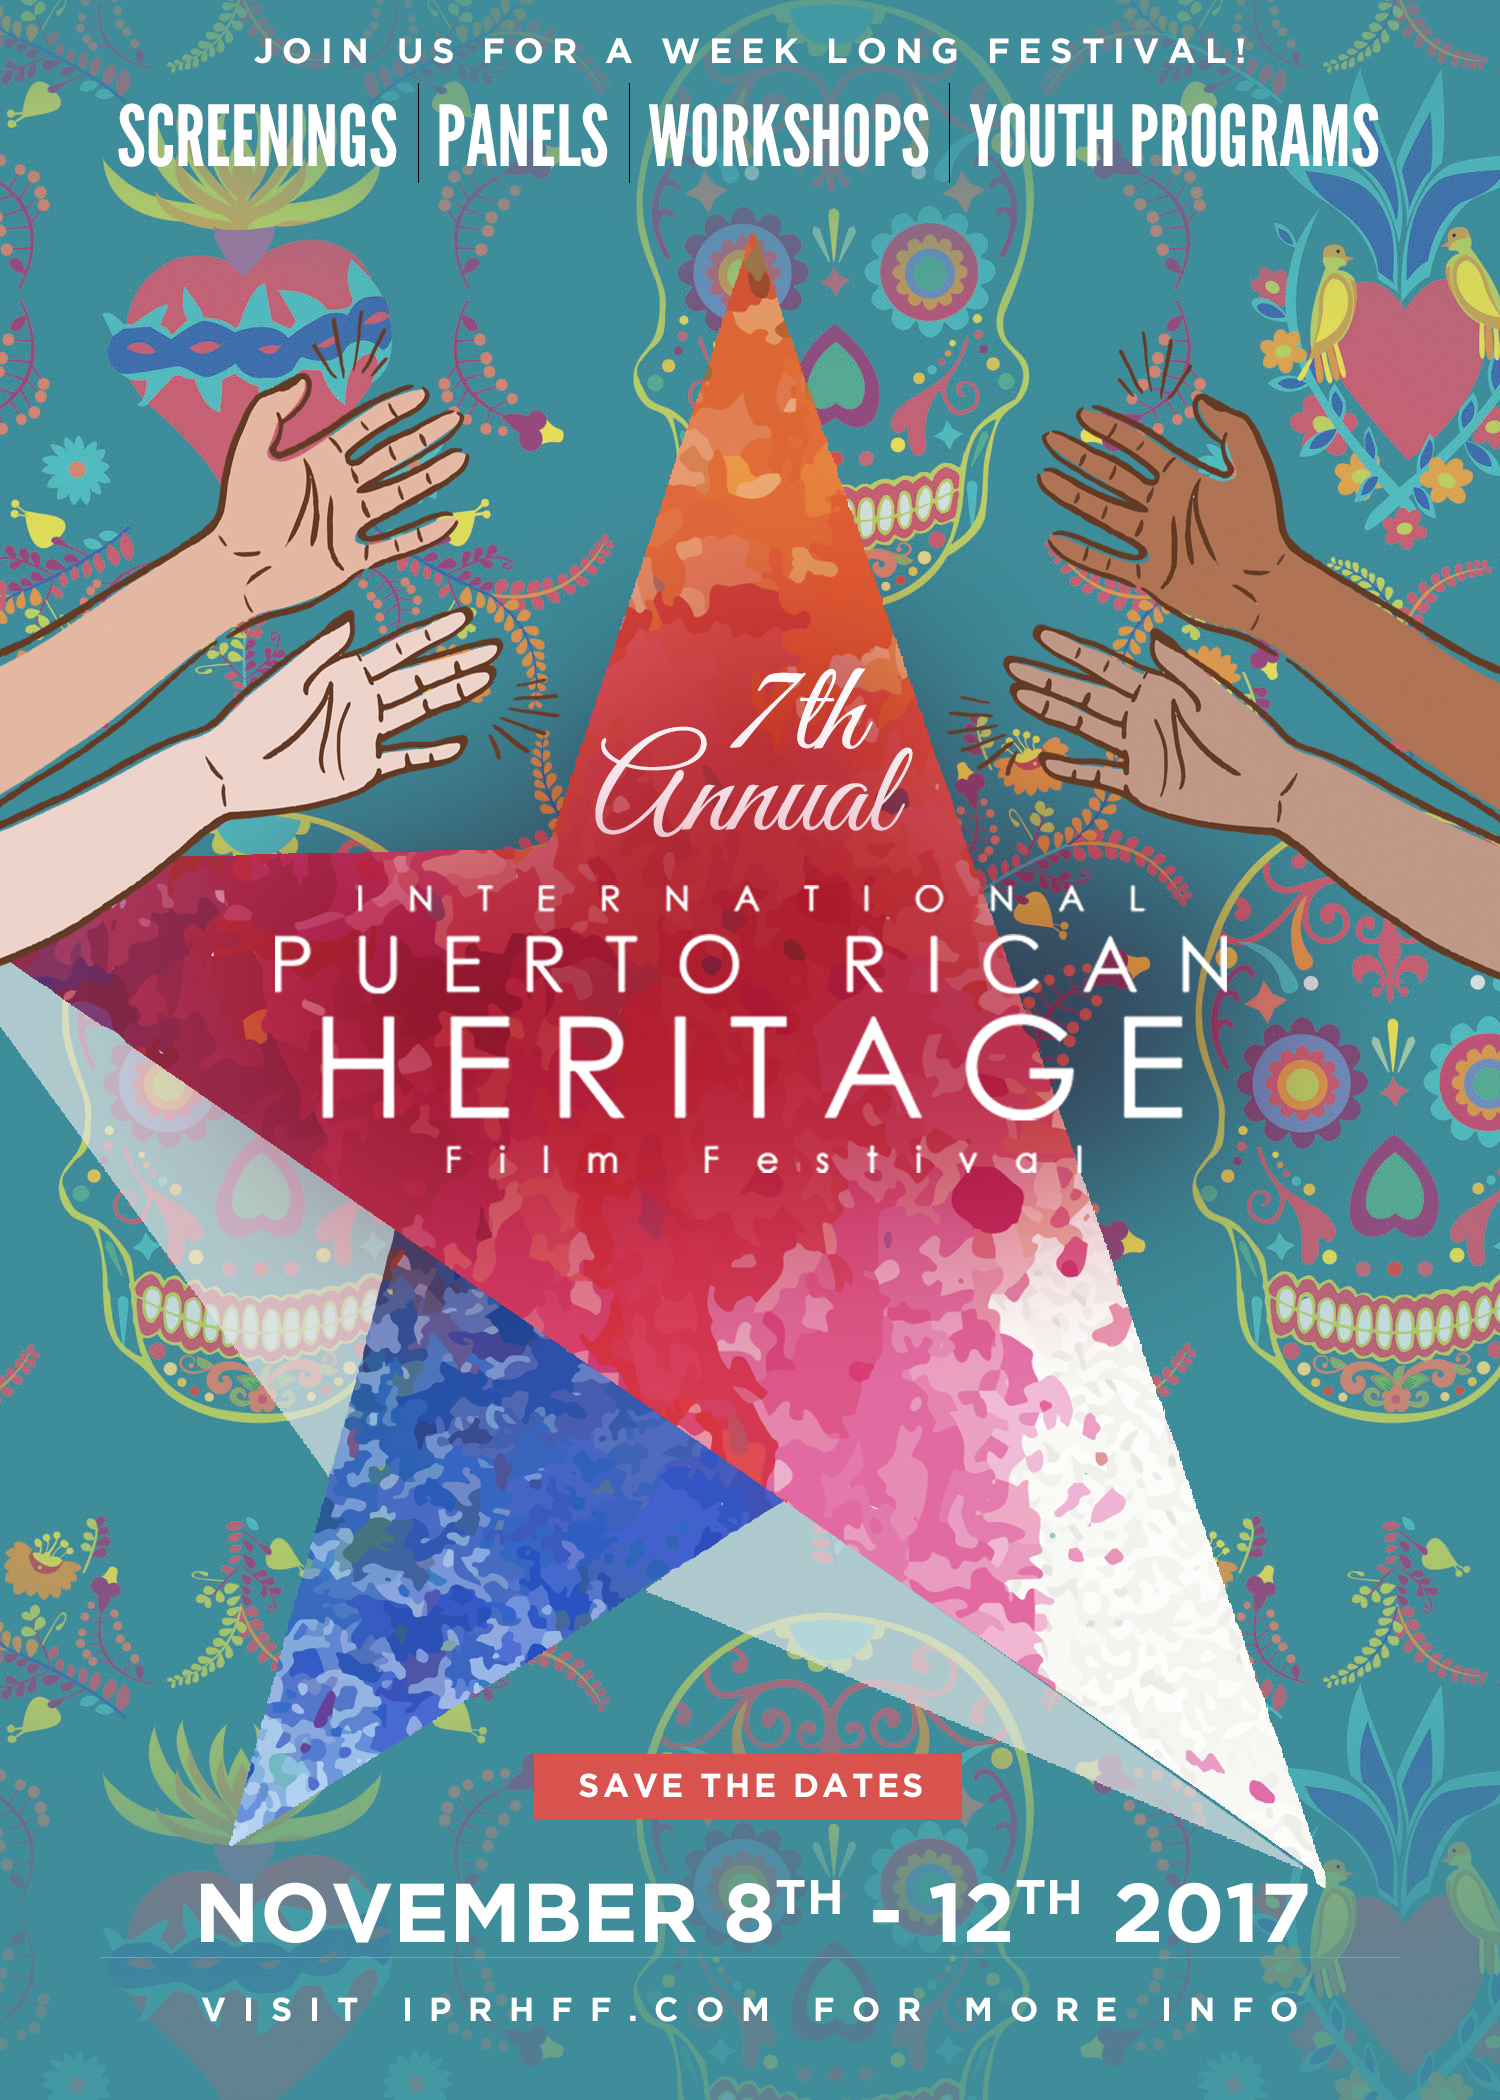 7th Annual International Puerto Rican Heritage Film Festival - One Day Access Passes 11/10